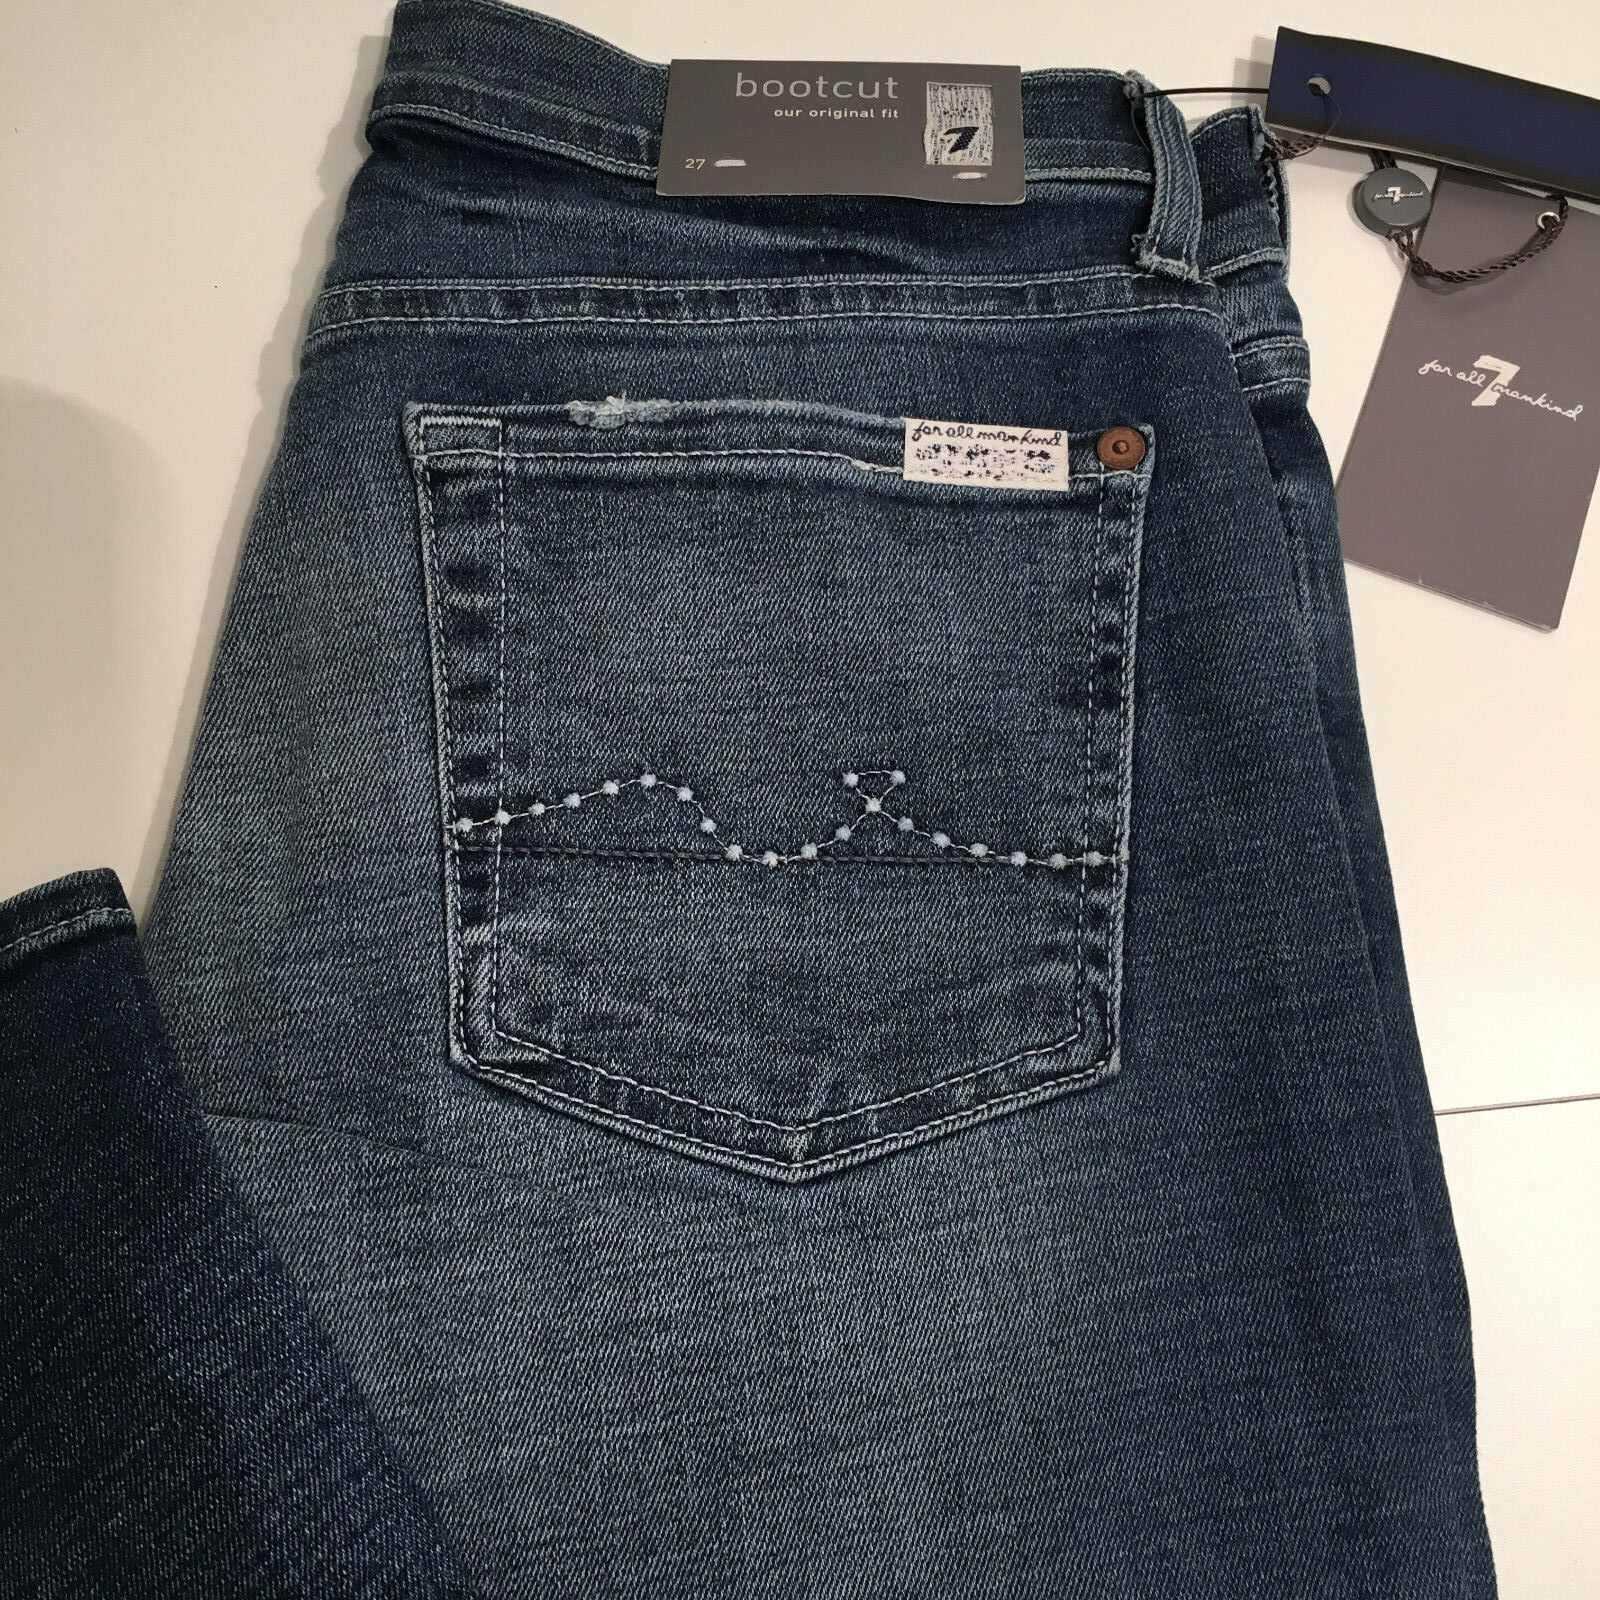 Seven 7 for All Mankind WOMEN'S Jeans blueE 27 x 35 BOOTCUT ORIGINAL FIT NEW